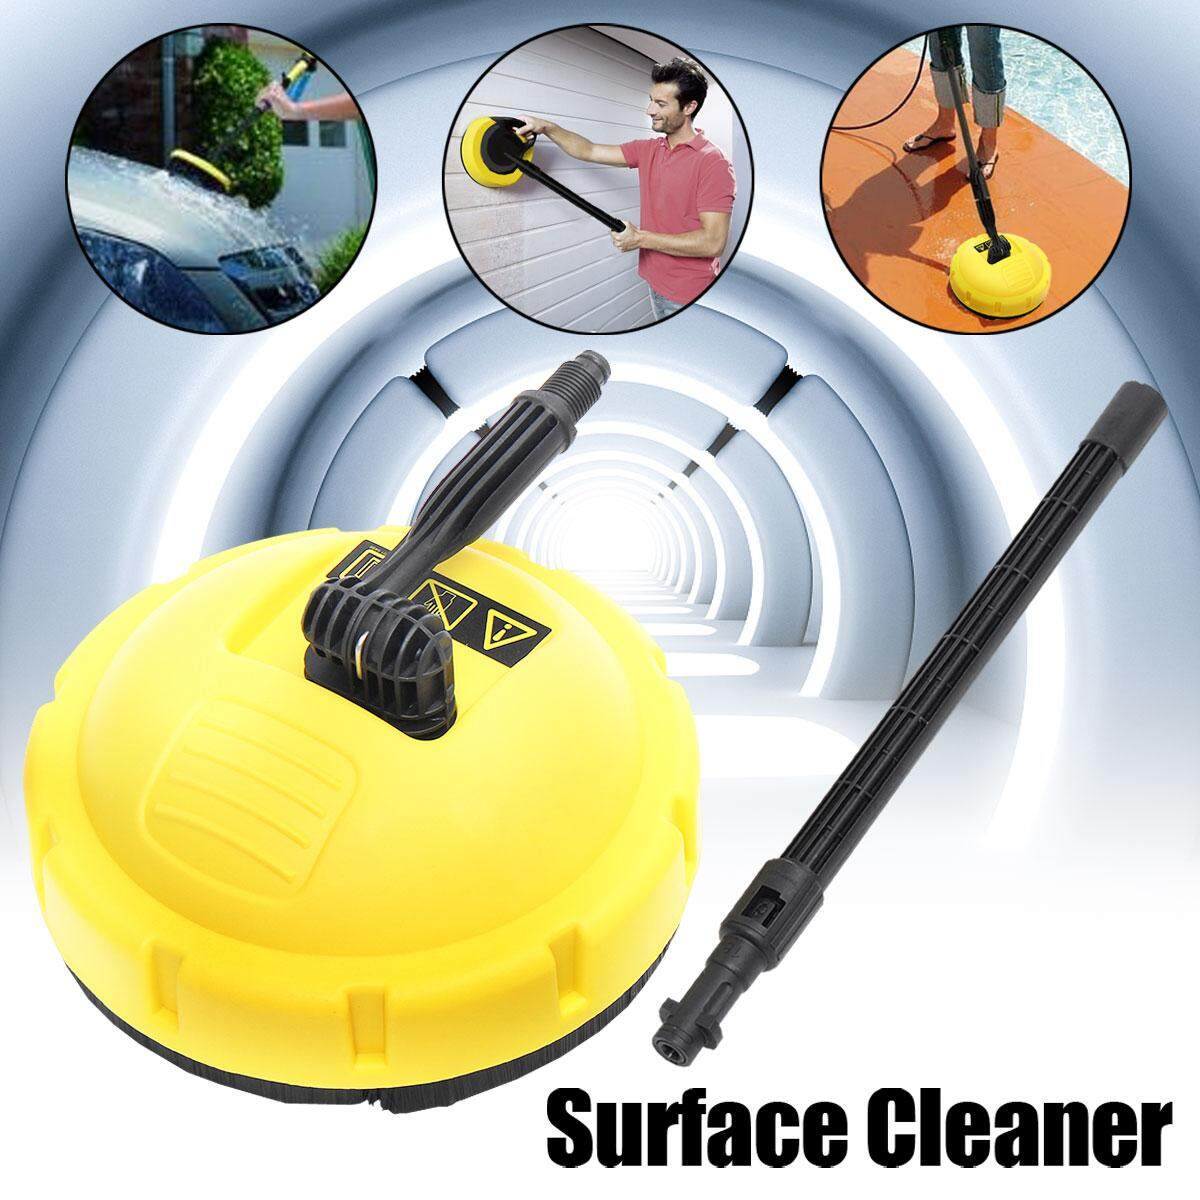 Pressure Washer Rotary Surface Patio Cleaner For Karcher K Series K2 K3 K4 By Teamwin.